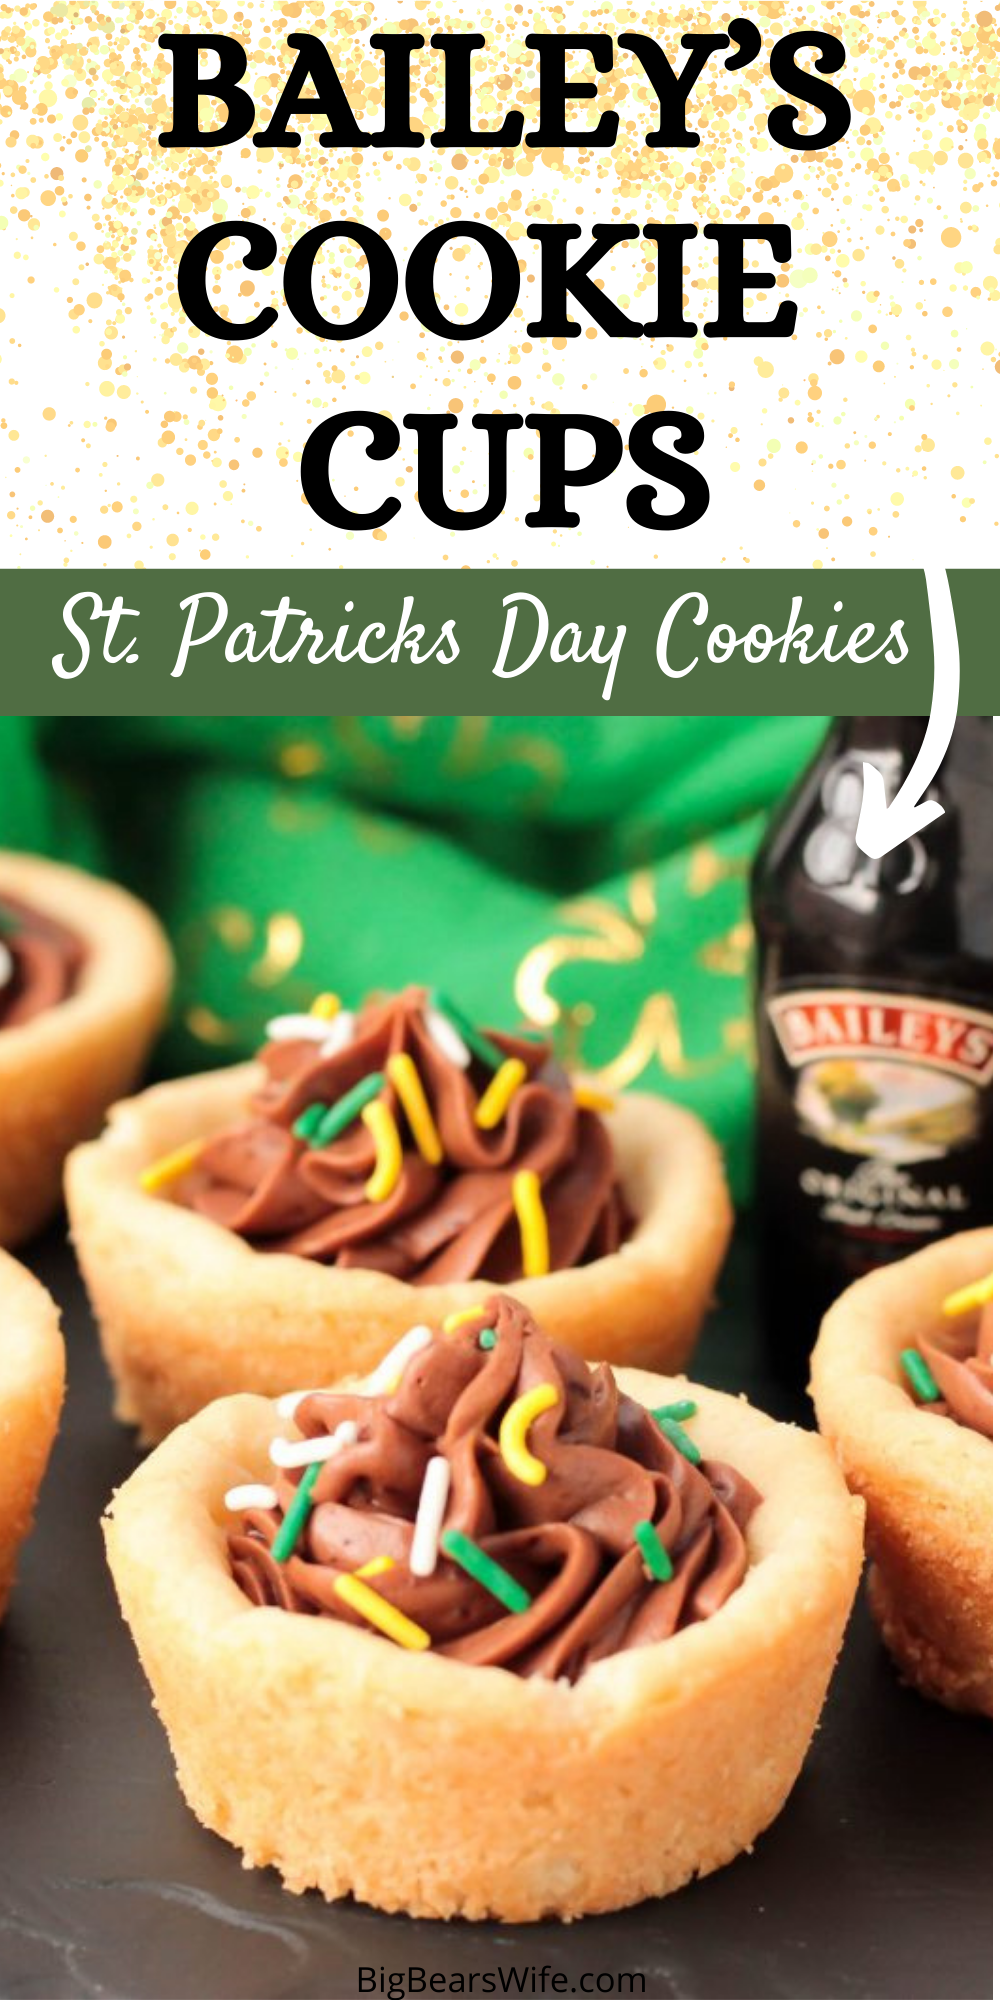 My Bailey's Cookie Cups are made with homemade sugar cookie dough and a sweet Bailey's Irish Cream chocolate frosting filling! Add a little something extra and decorate them with green, white and yellow sprinkles!   via @bigbearswife